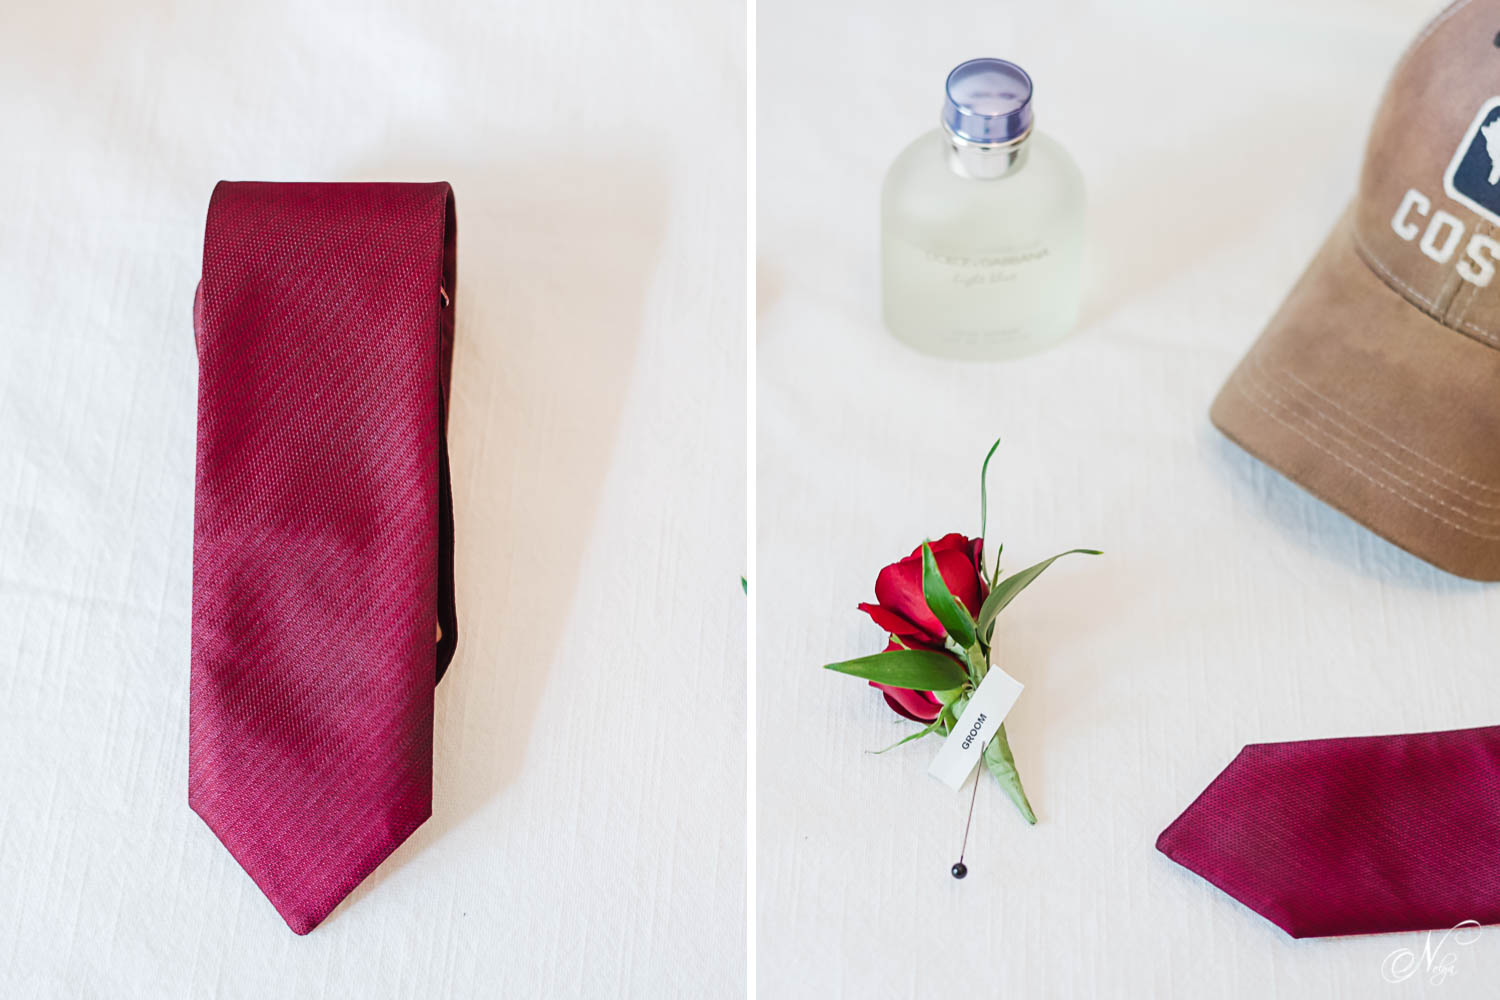 groom's details: maroon necktie, perfume, a red rose and part of a ball hat on white background